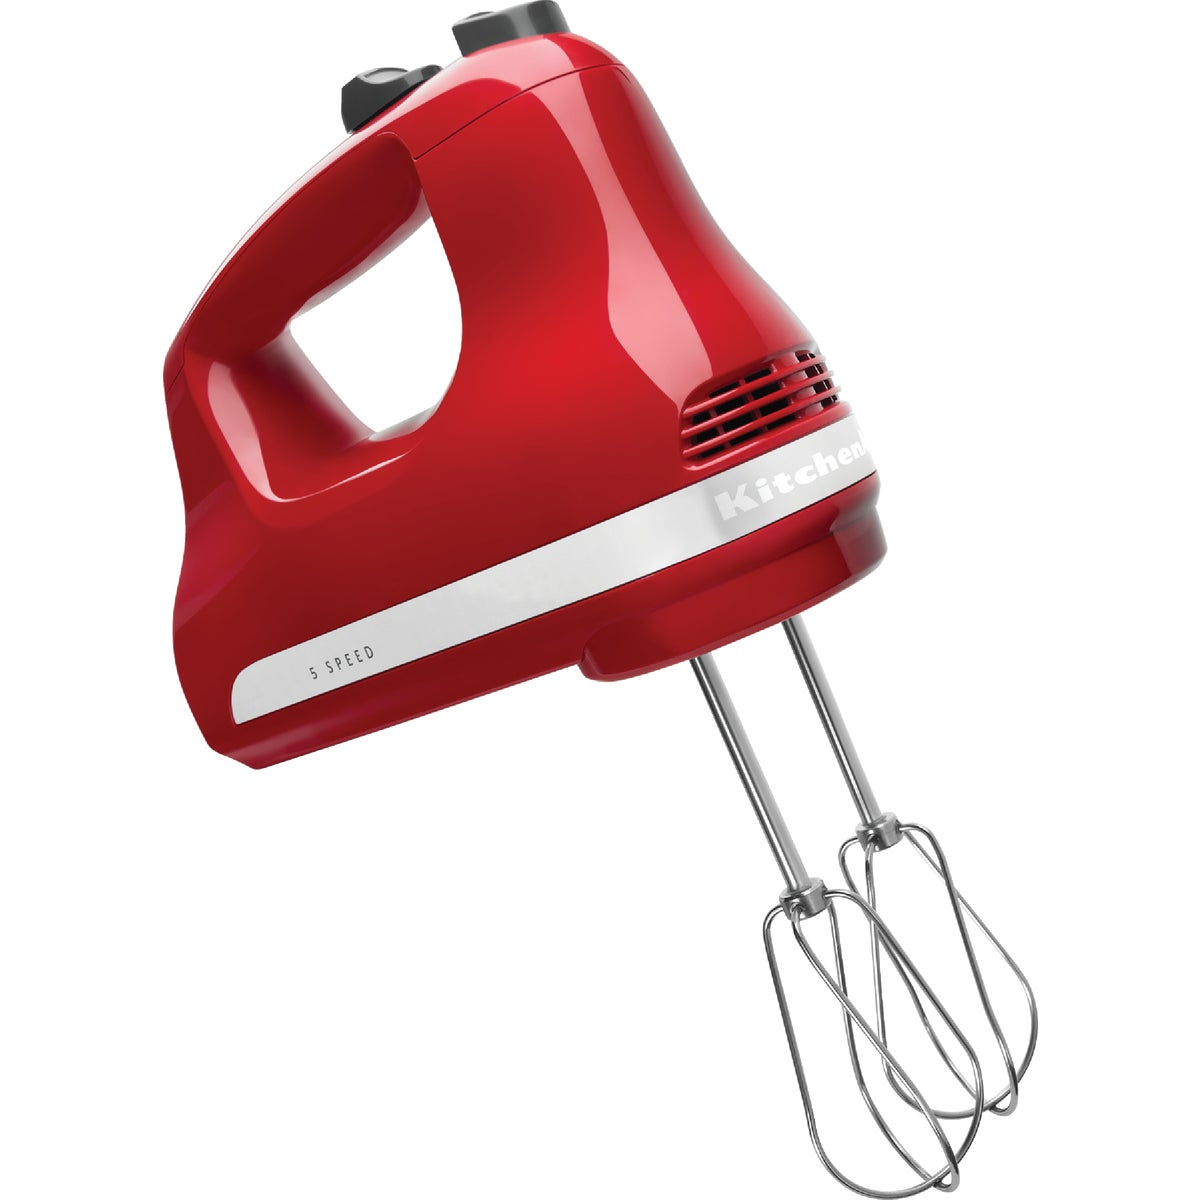 RED 5-SPEED HAND MIXER - KHM512ER by Kitchenaid Inc